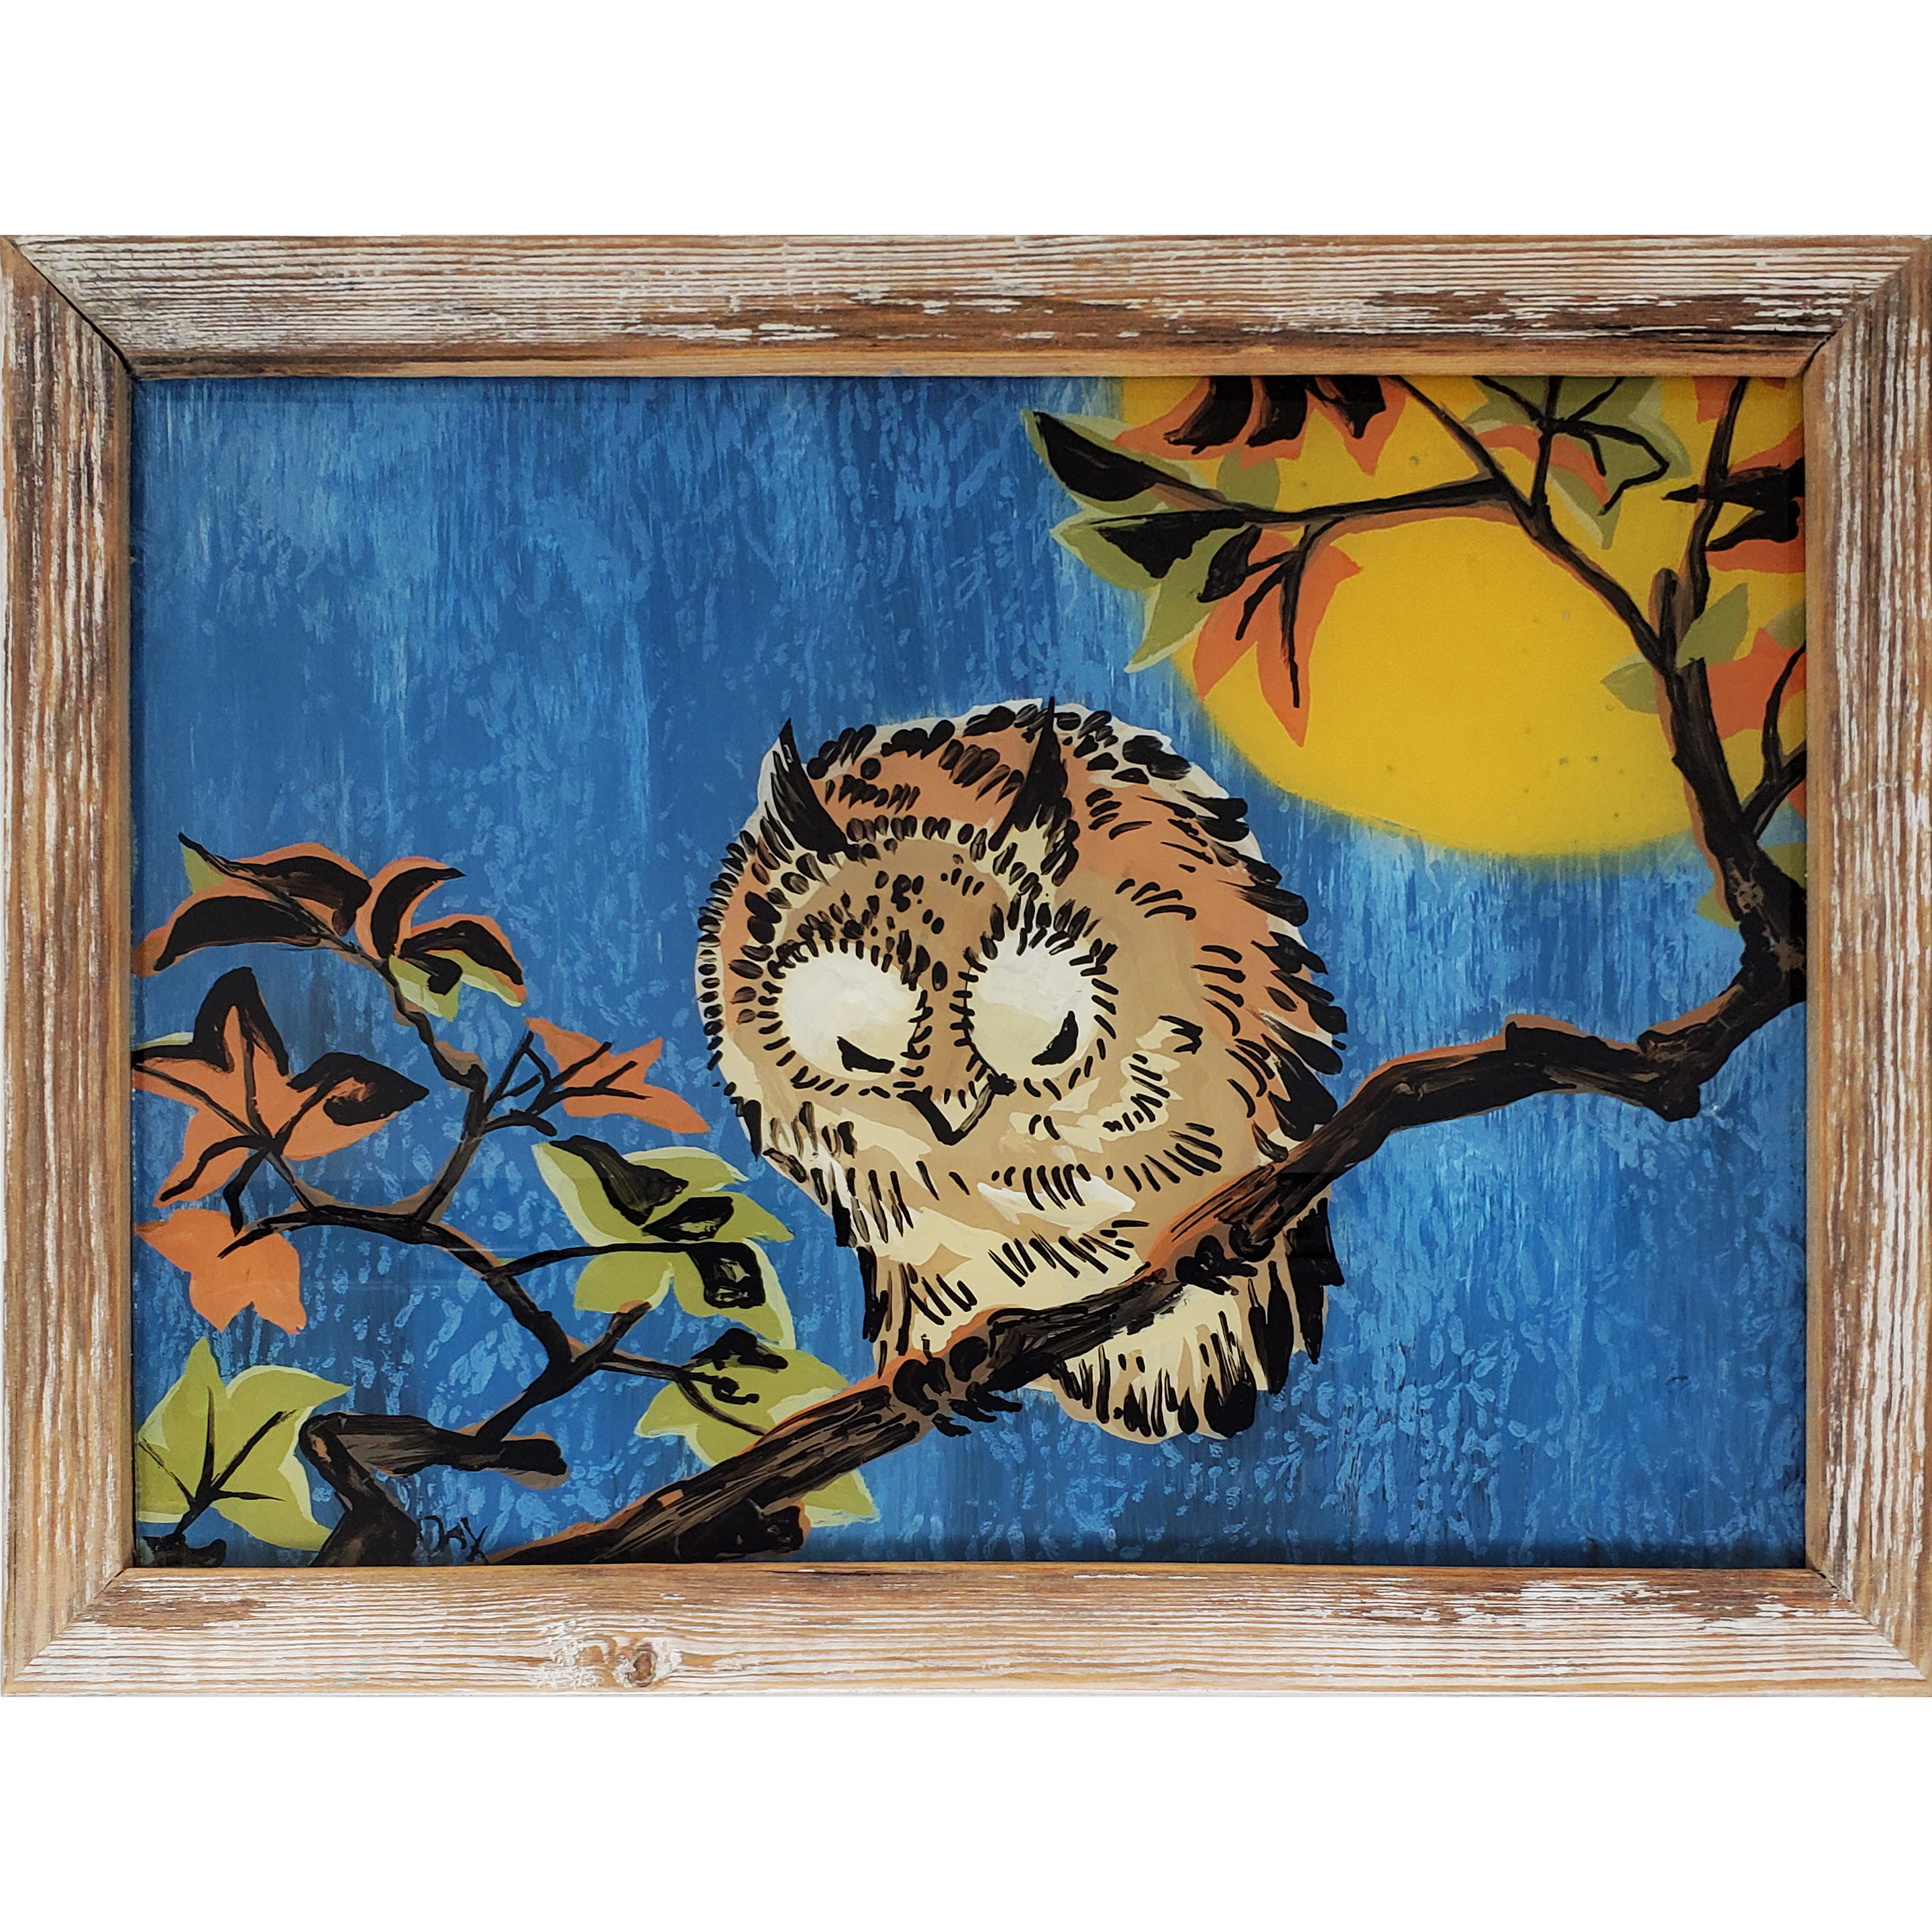 dax-owl-painting-large.jpg